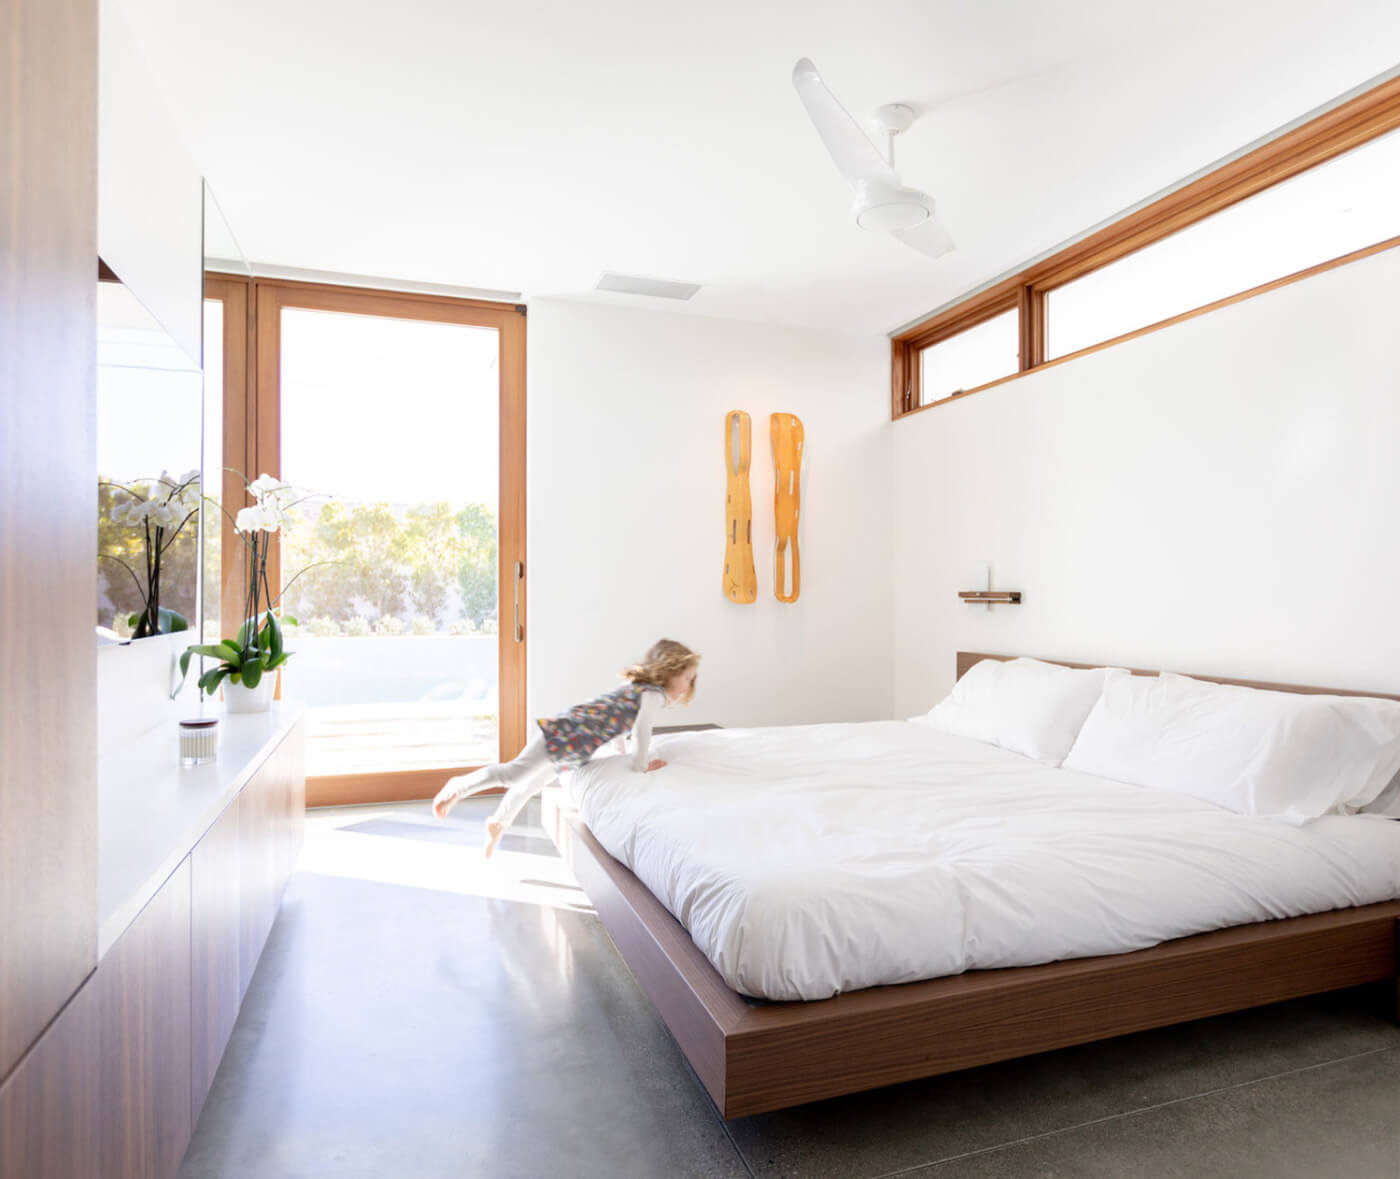 Bedroom with large wood Marvin doors and windows